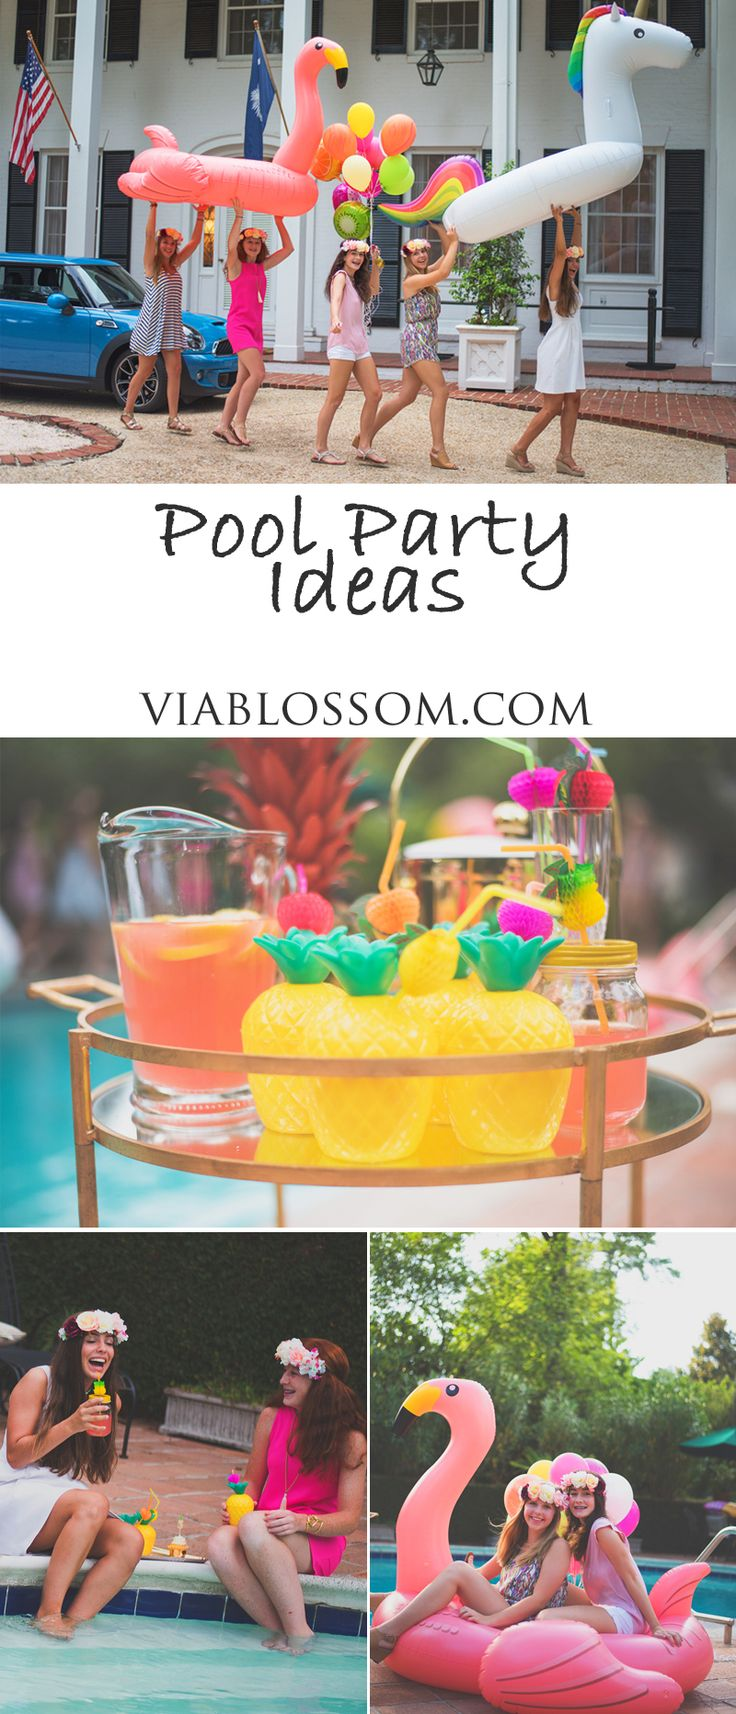 Hotel Pool Party Ideas house pool party peaceful design ideas 2 palm spring parties How To Throw A Fun Pool Party At The Via Blossom Blog All The